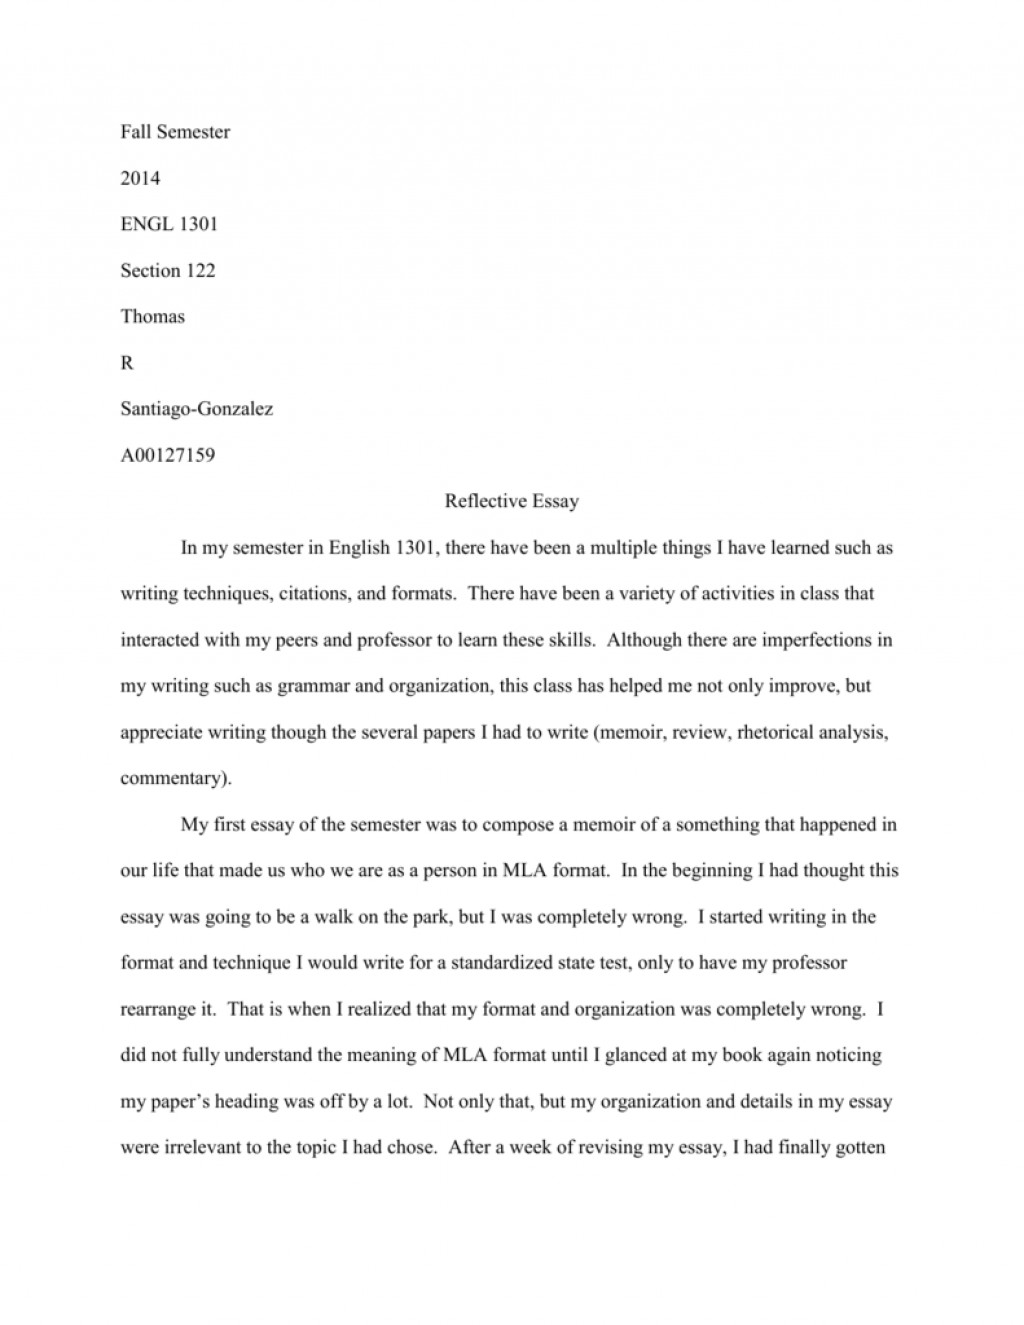 004 Essay Example Reflective Essays 007151533 1 Magnificent By Manzoor Mirza Pdf Analysis Definition Writing Style Large